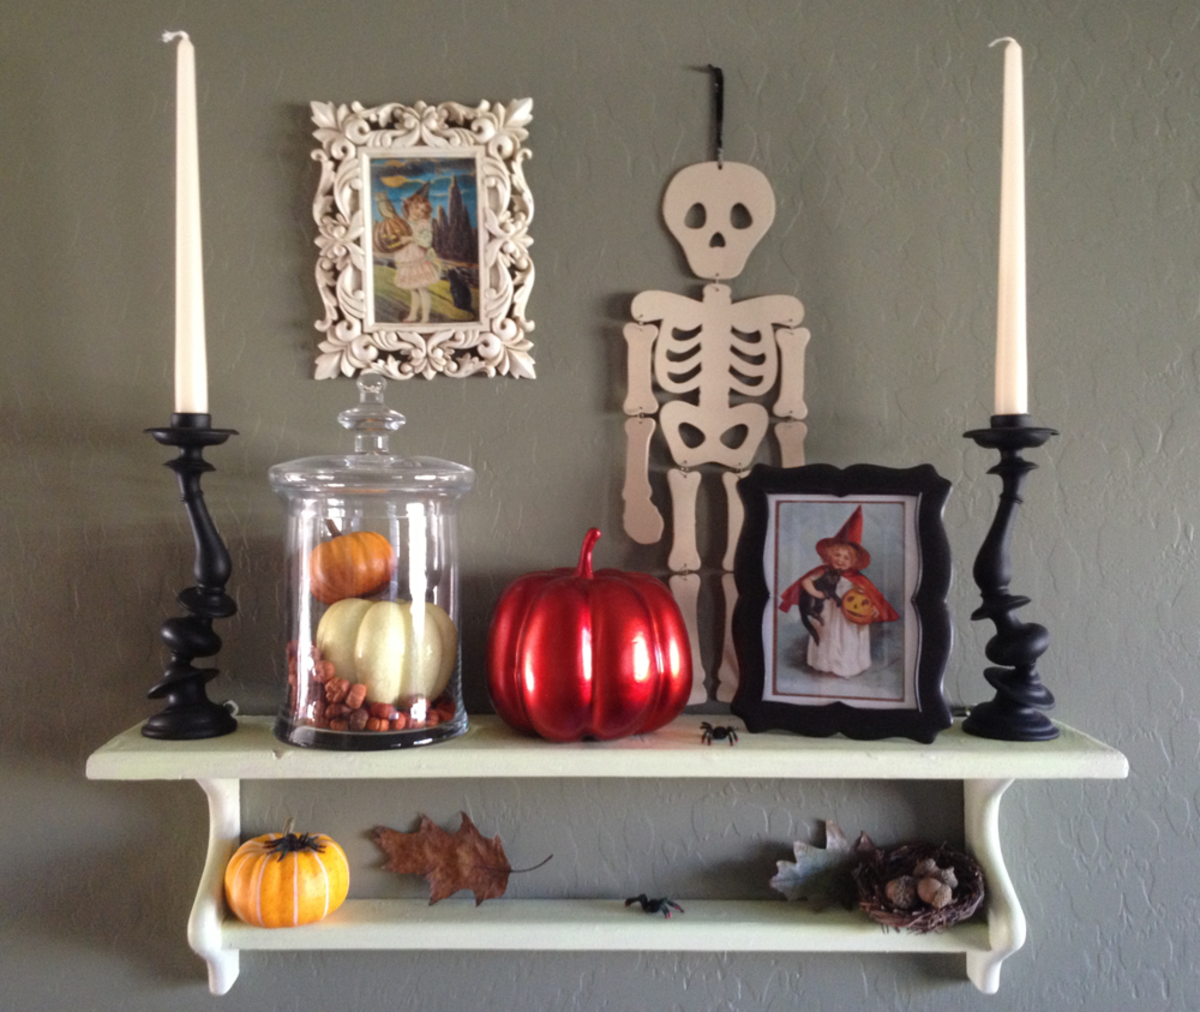 Vintage Halloween Images in Frames